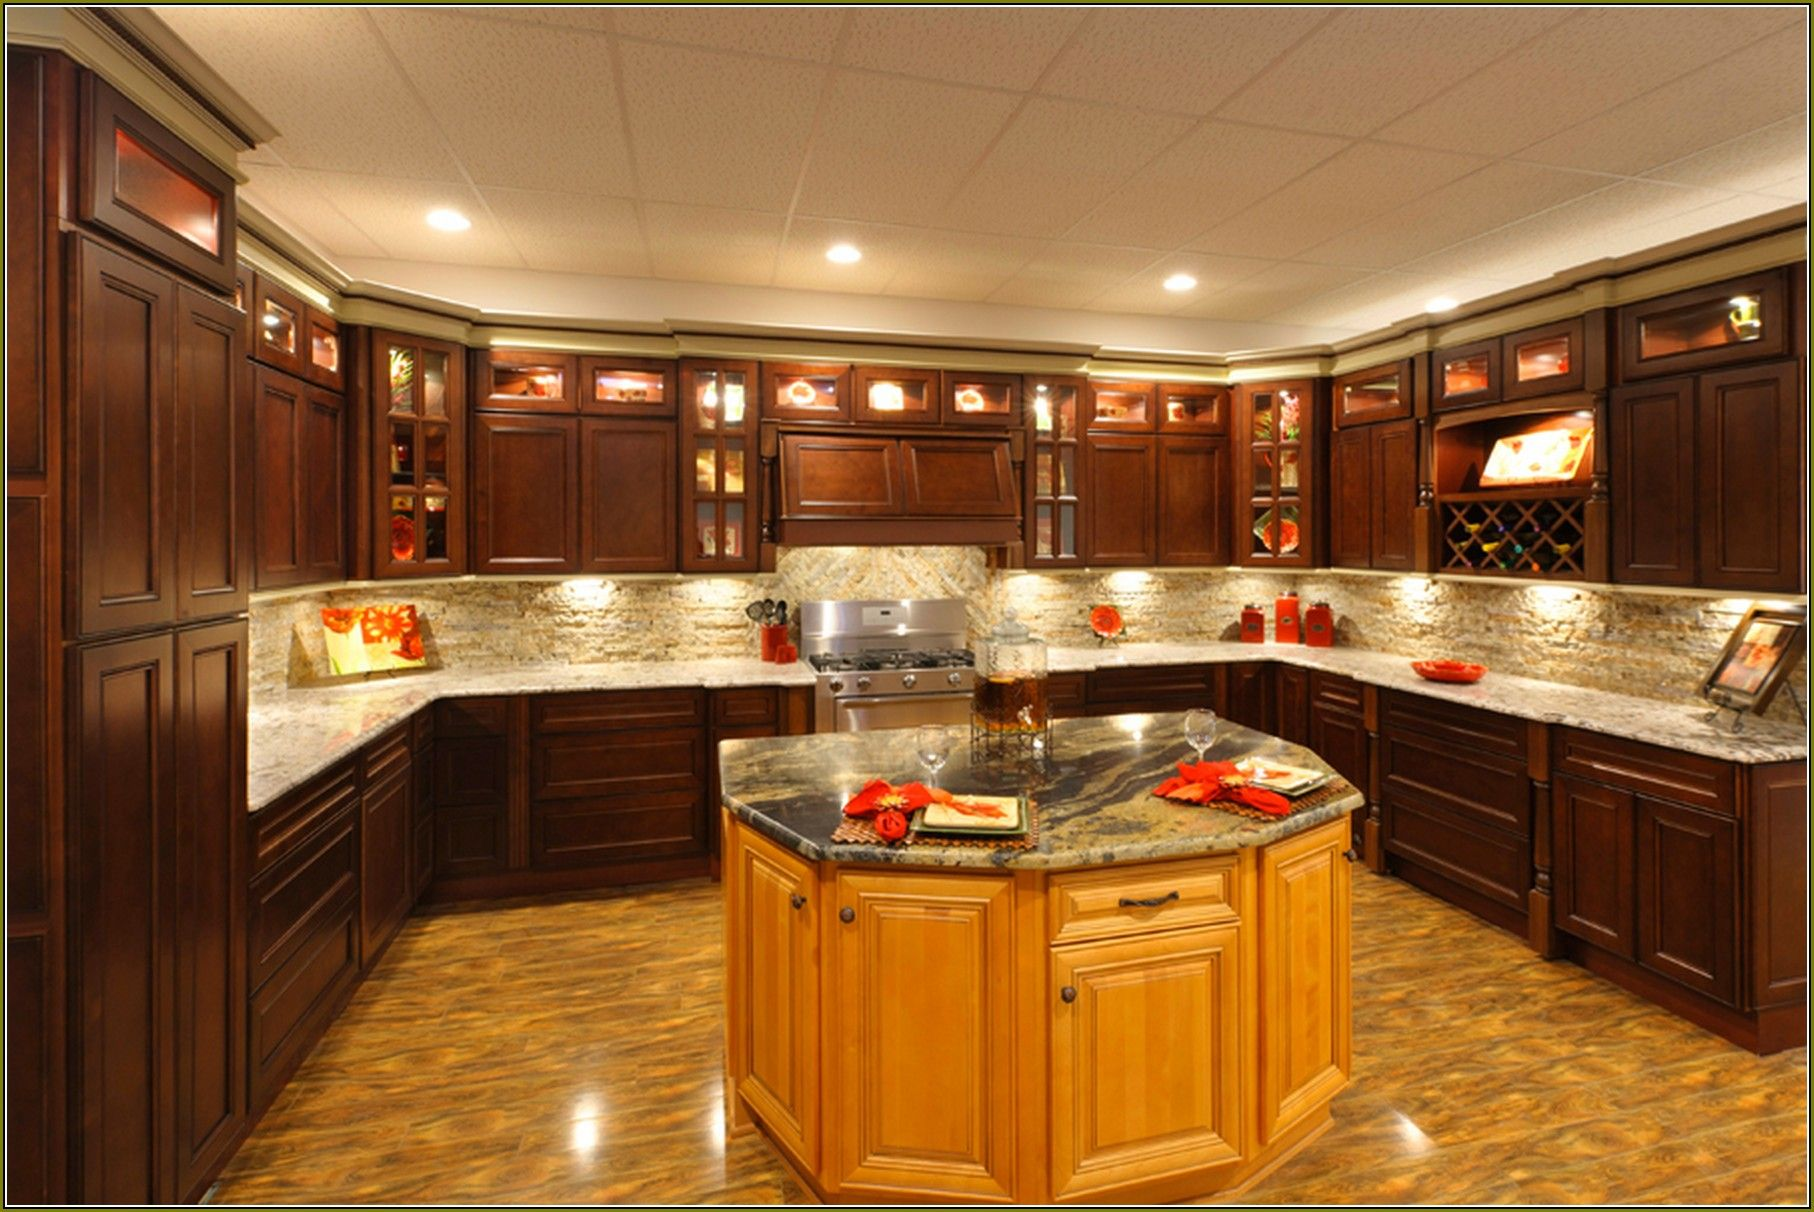 Kitchen Cabinet Outlet Indiana Kitchen Cabinet Outlet Affordable Kitchen Cabinets Used Kitchen Cabinets